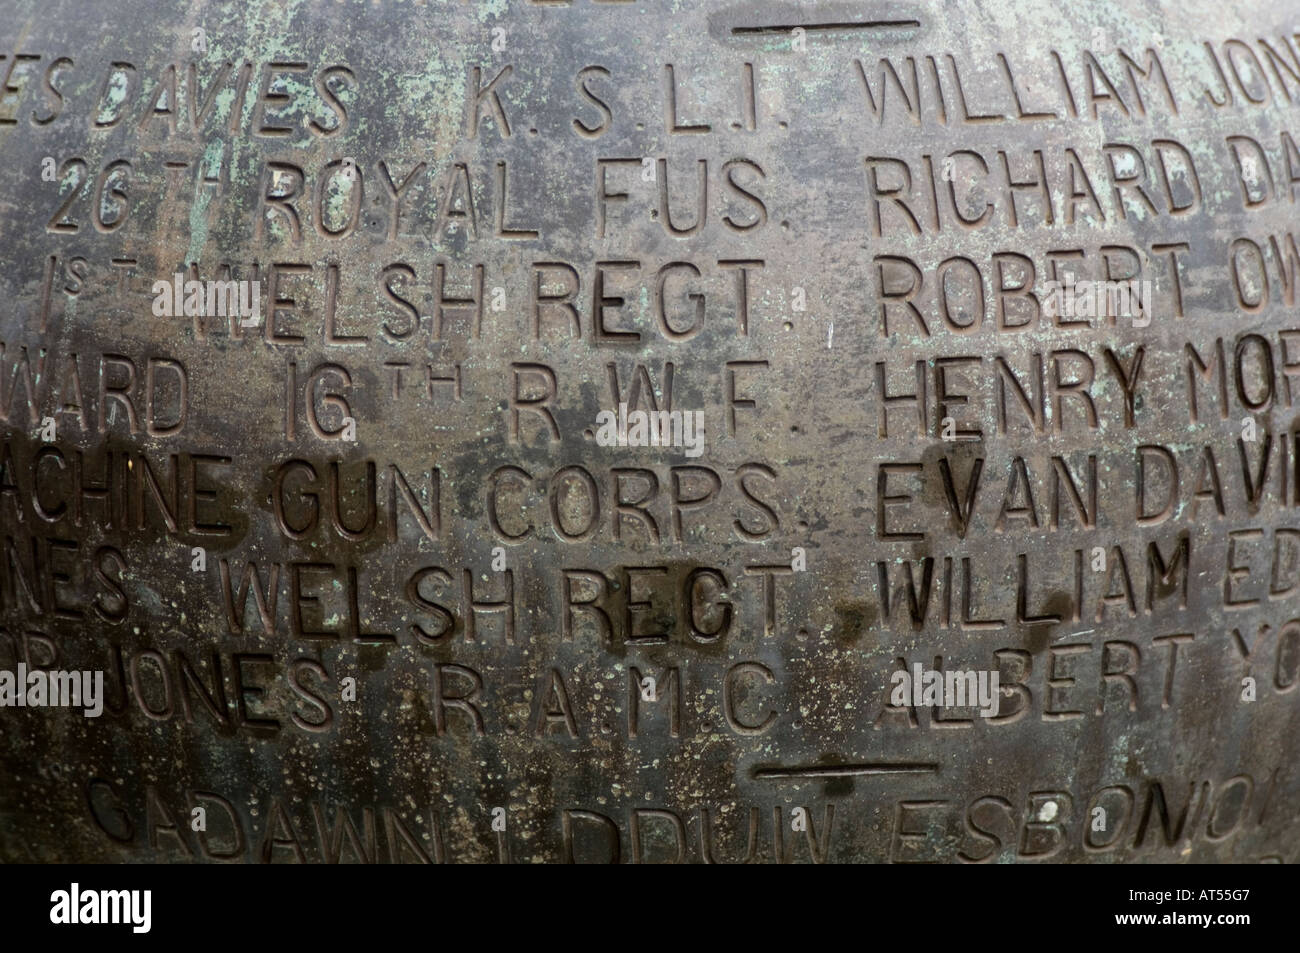 names of soldiers killed in the first world war on  a war memorial, tabernacle chapel aberystwyth ceredigion - Stock Image